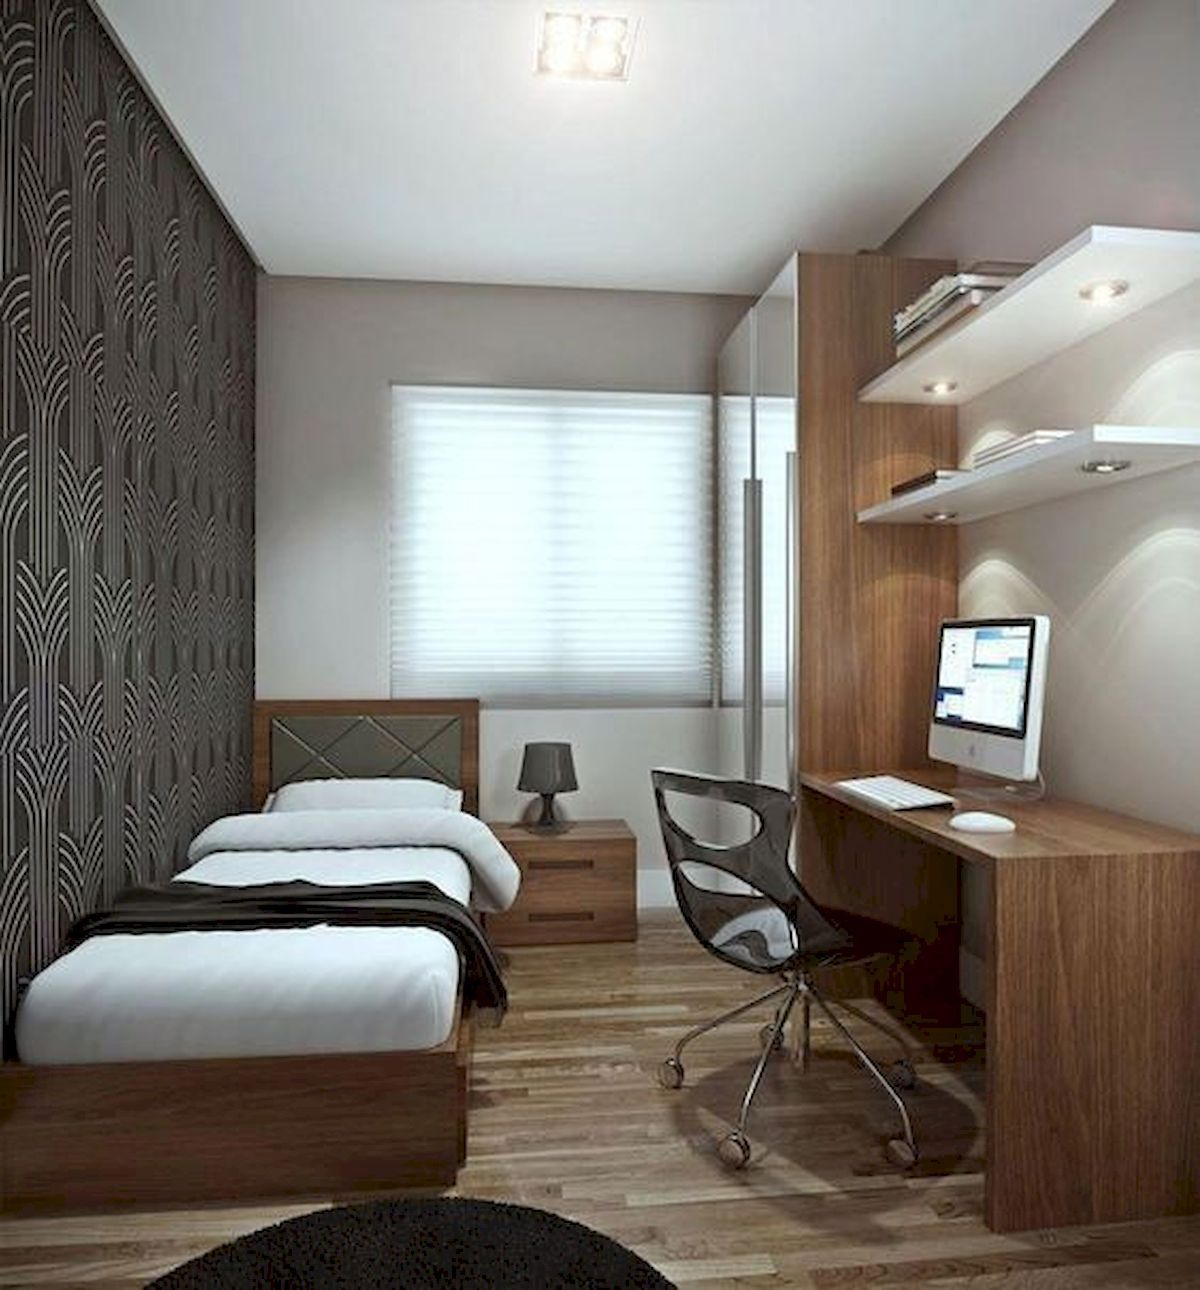 Awesome Modern Small Bedroom Design And Decor Ideas 13